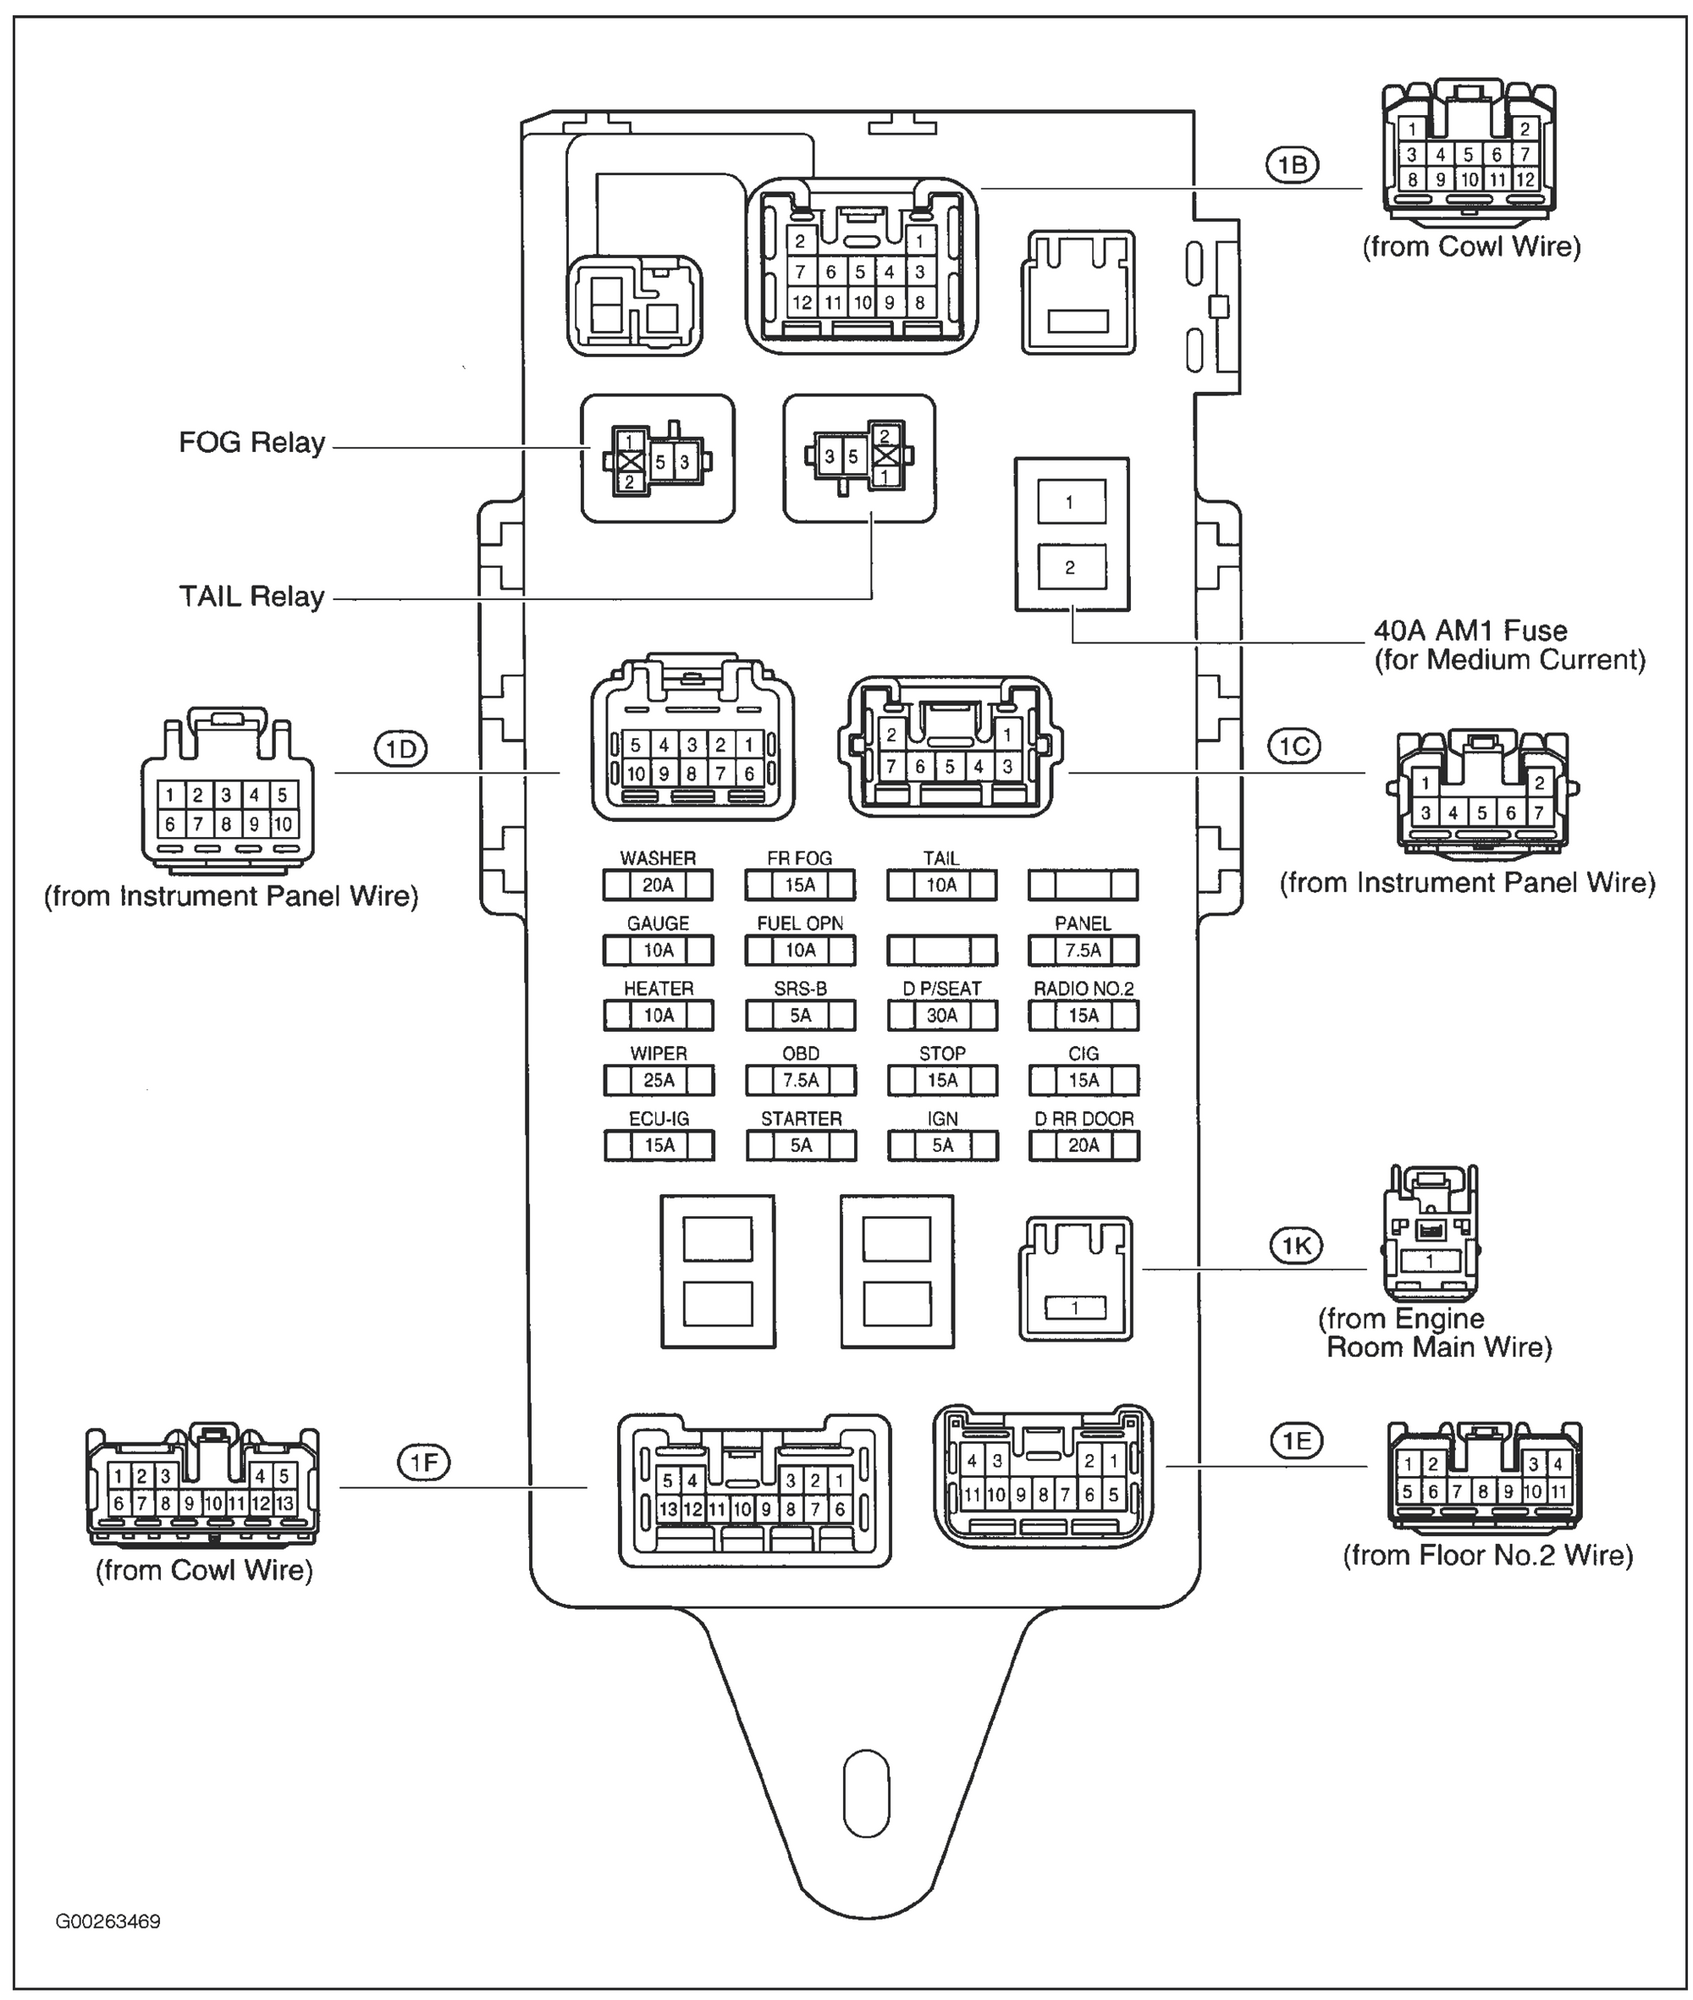 Fuse Diagram For 2003 Lexus Gs300 - machine learning on